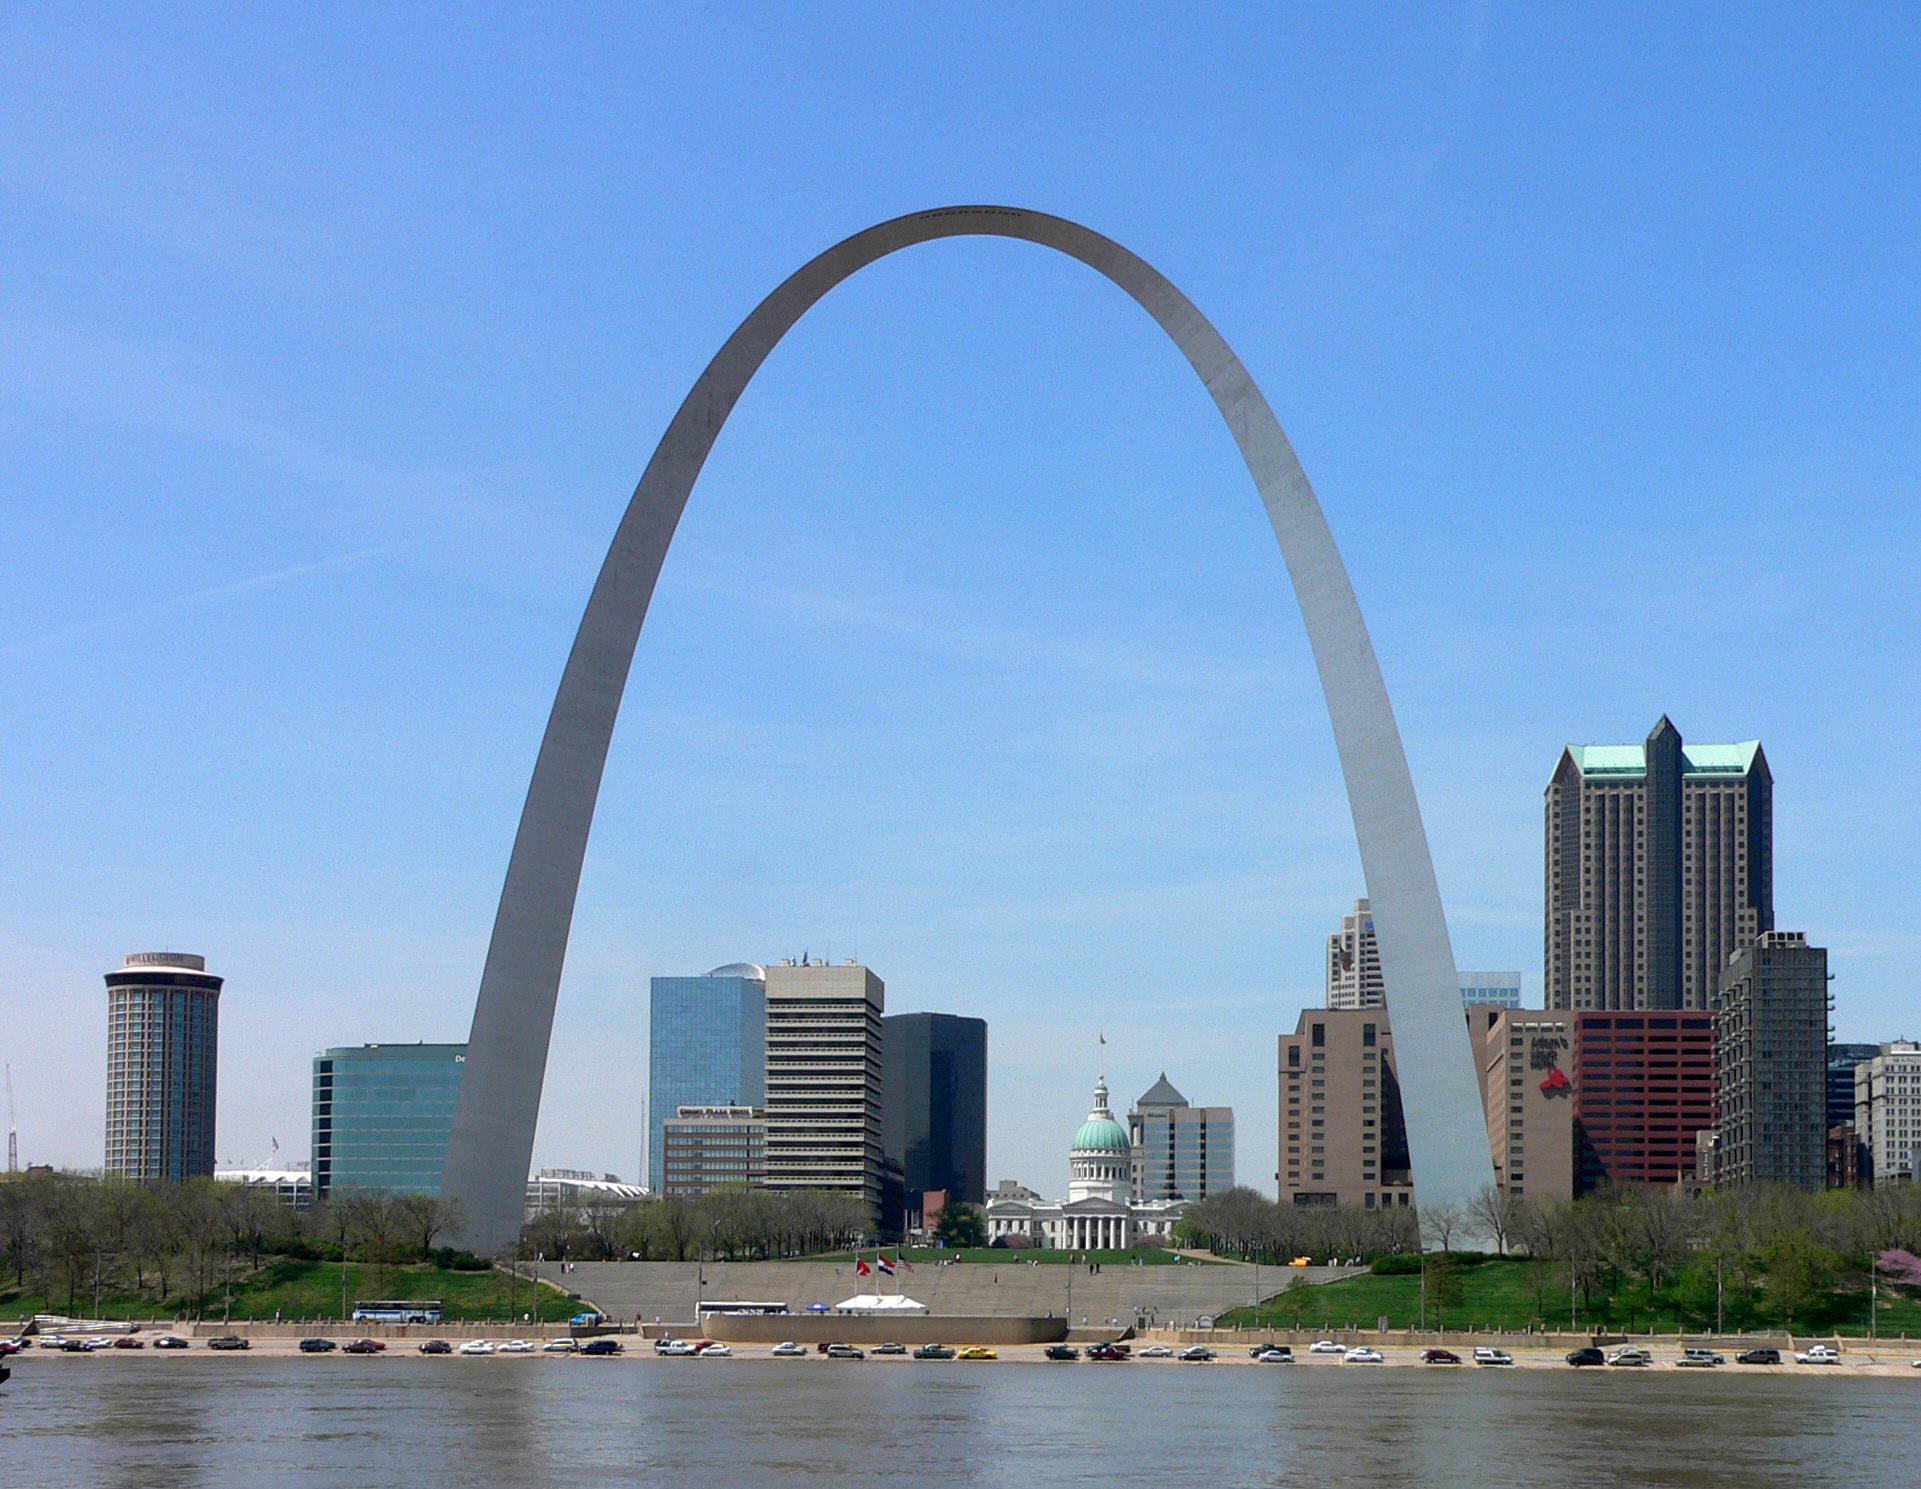 Free Images Saint Louis Mo